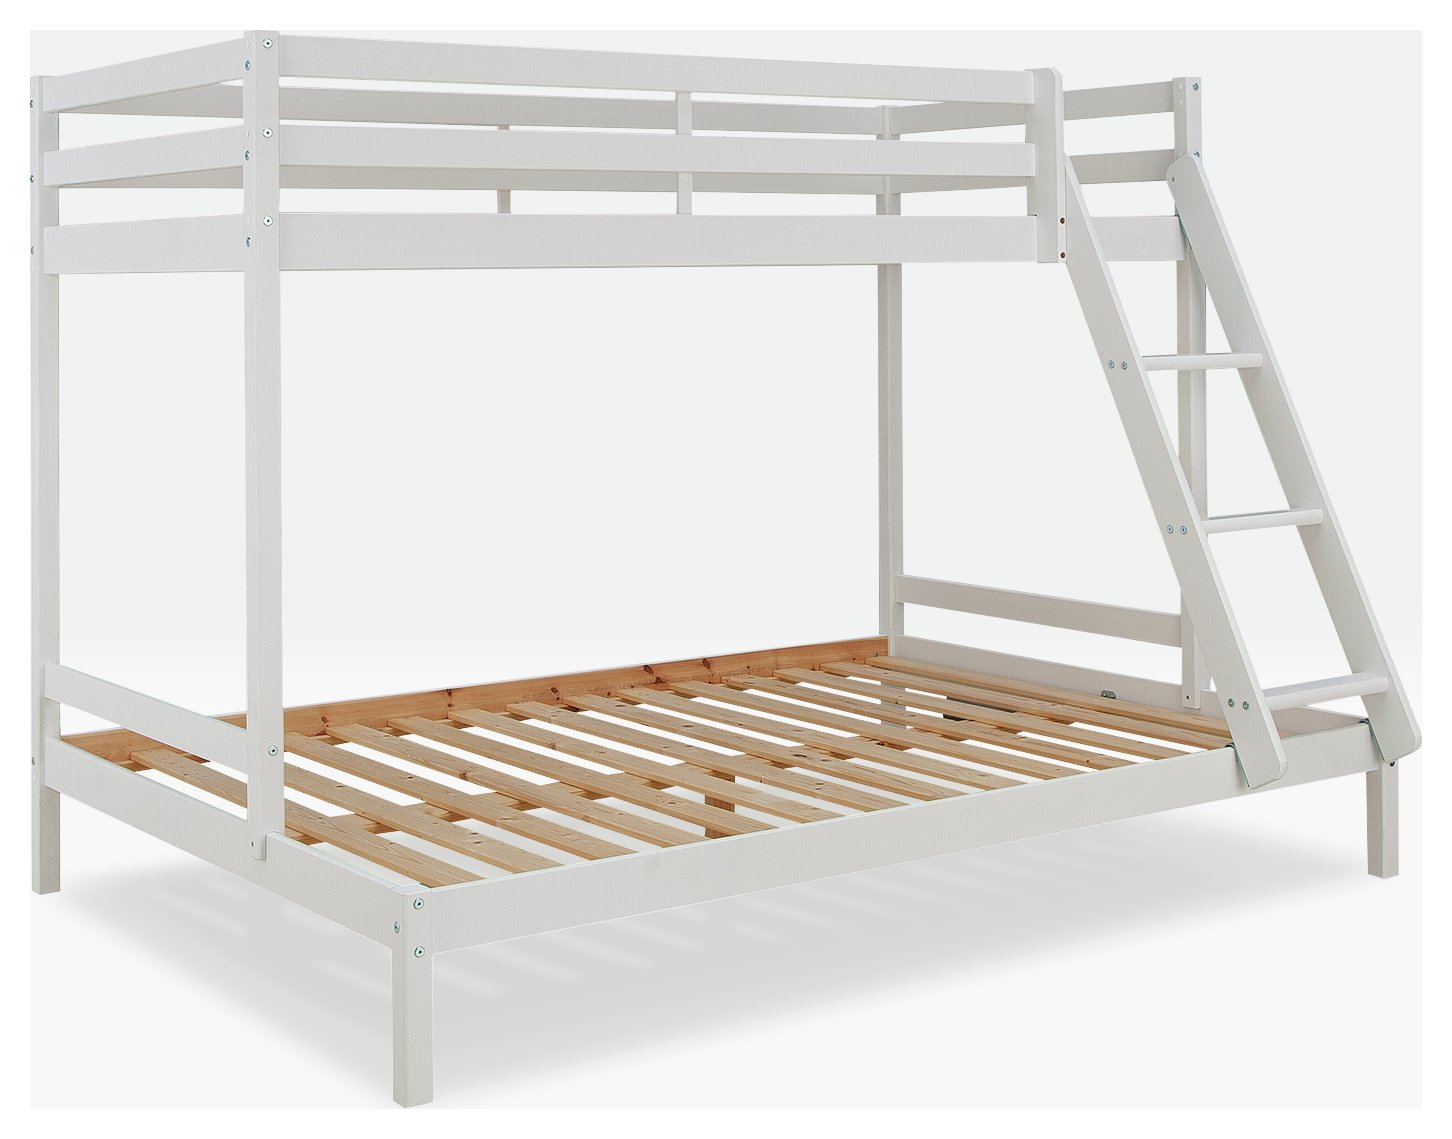 bunk beds with sofa bed underneath argos sleeper for campers buy home kaycie white triple 2 kids mattresses